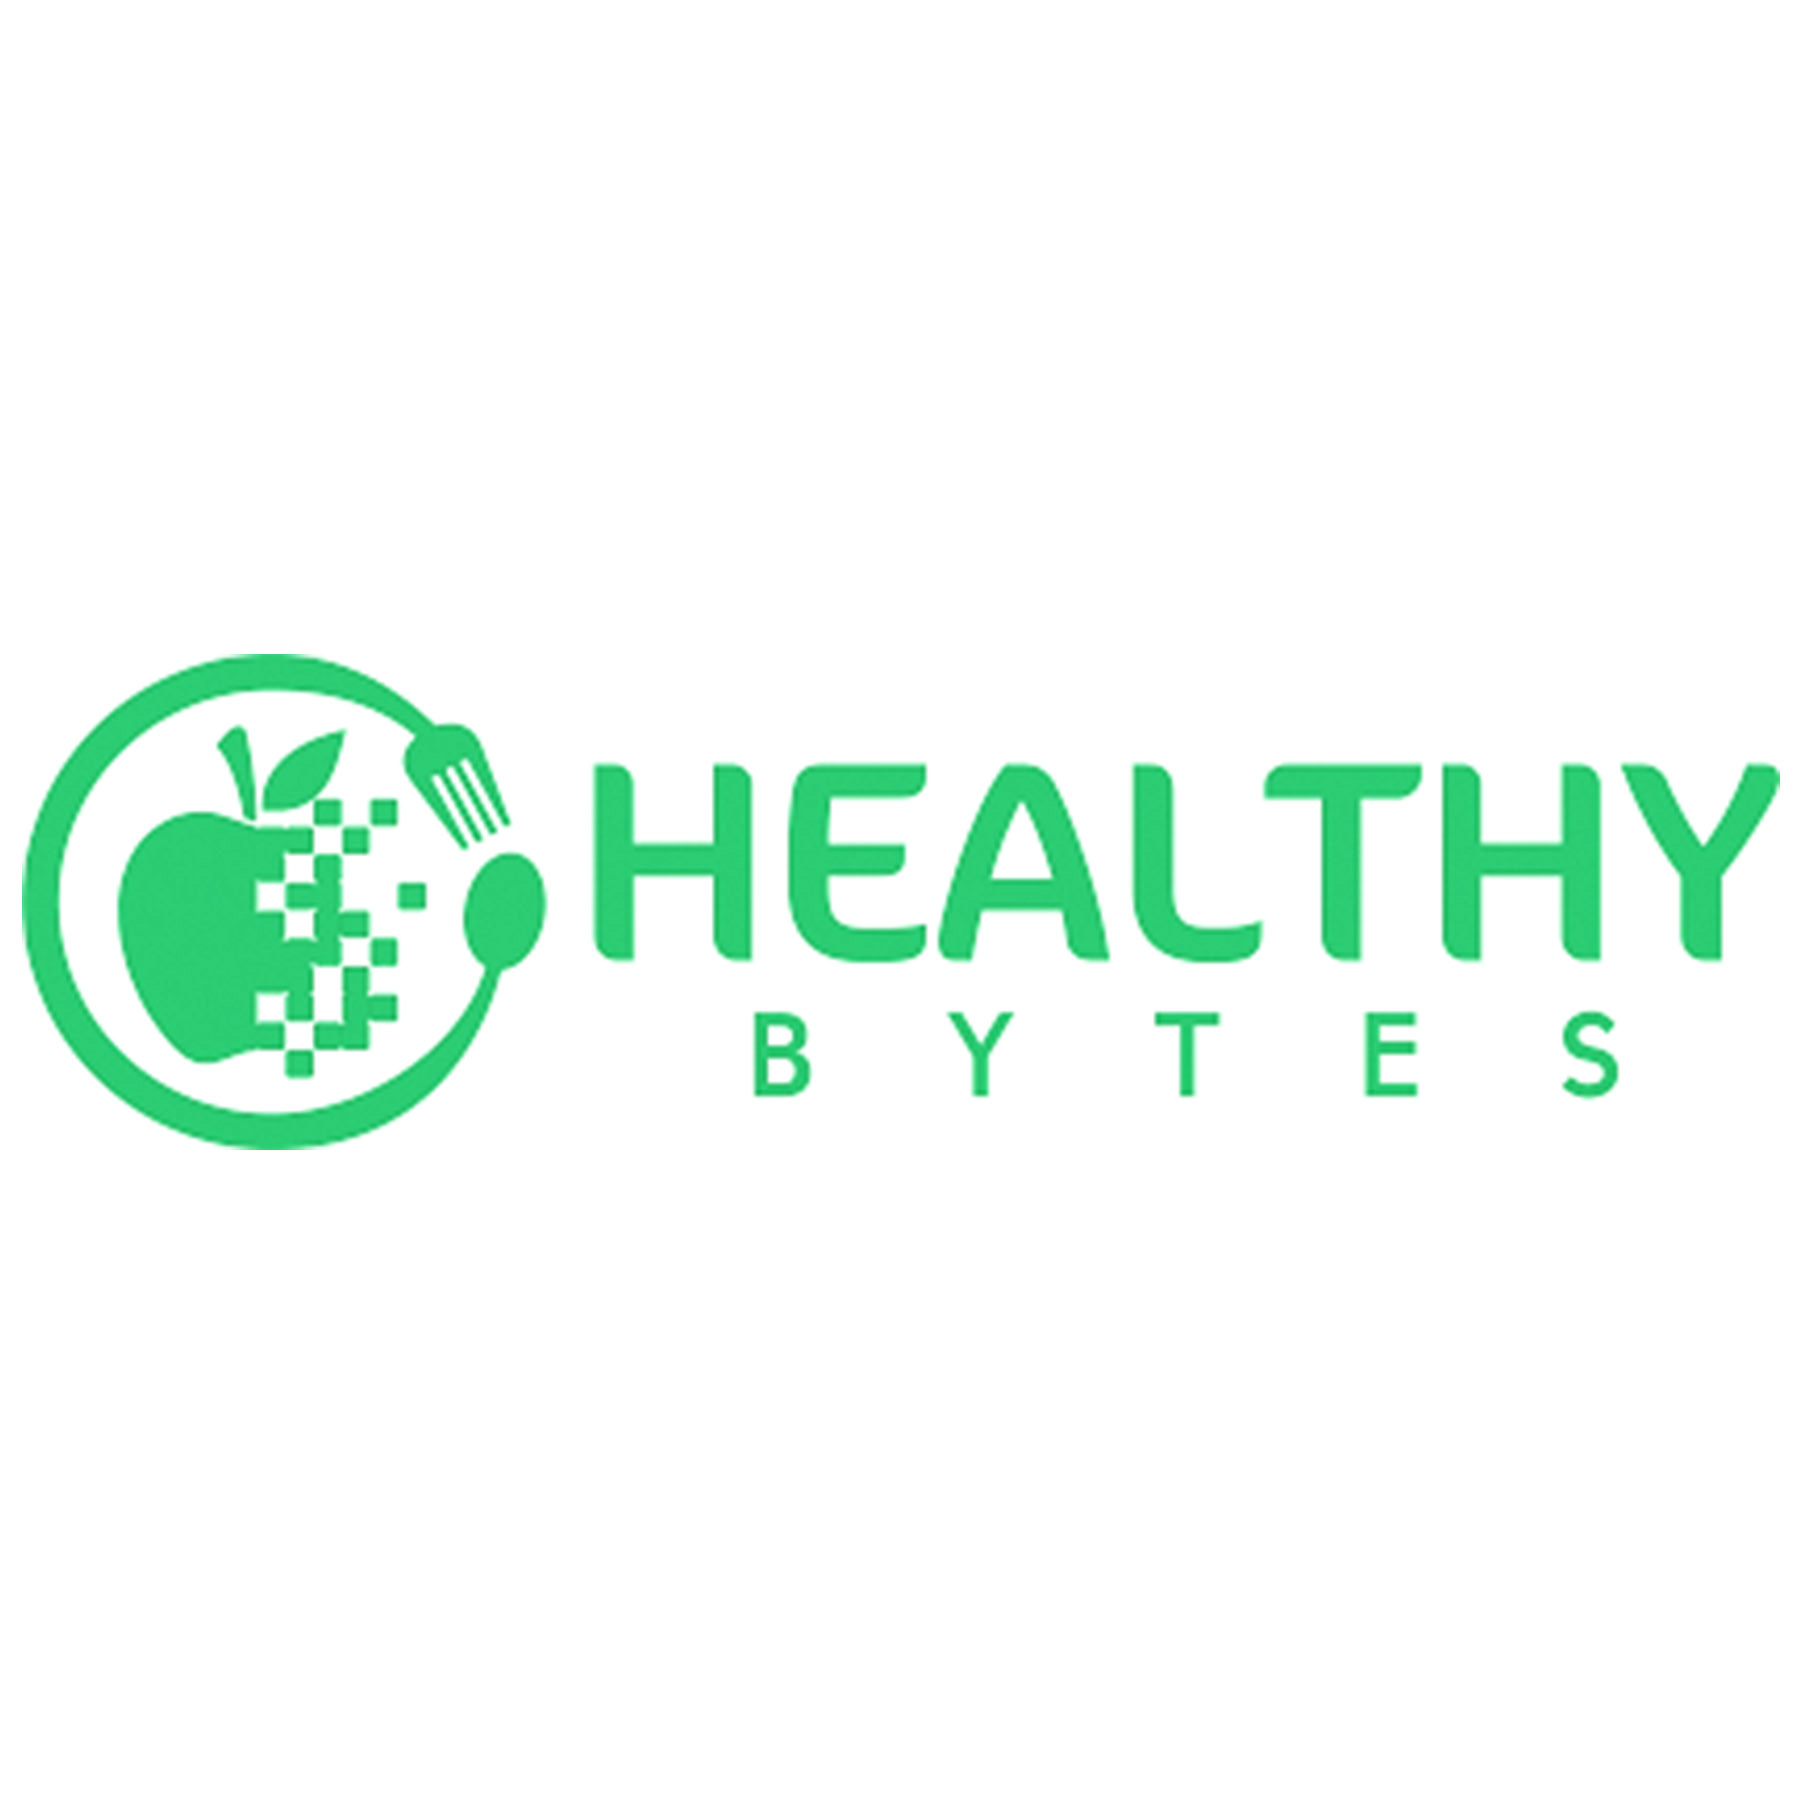 www.healthybytes.co